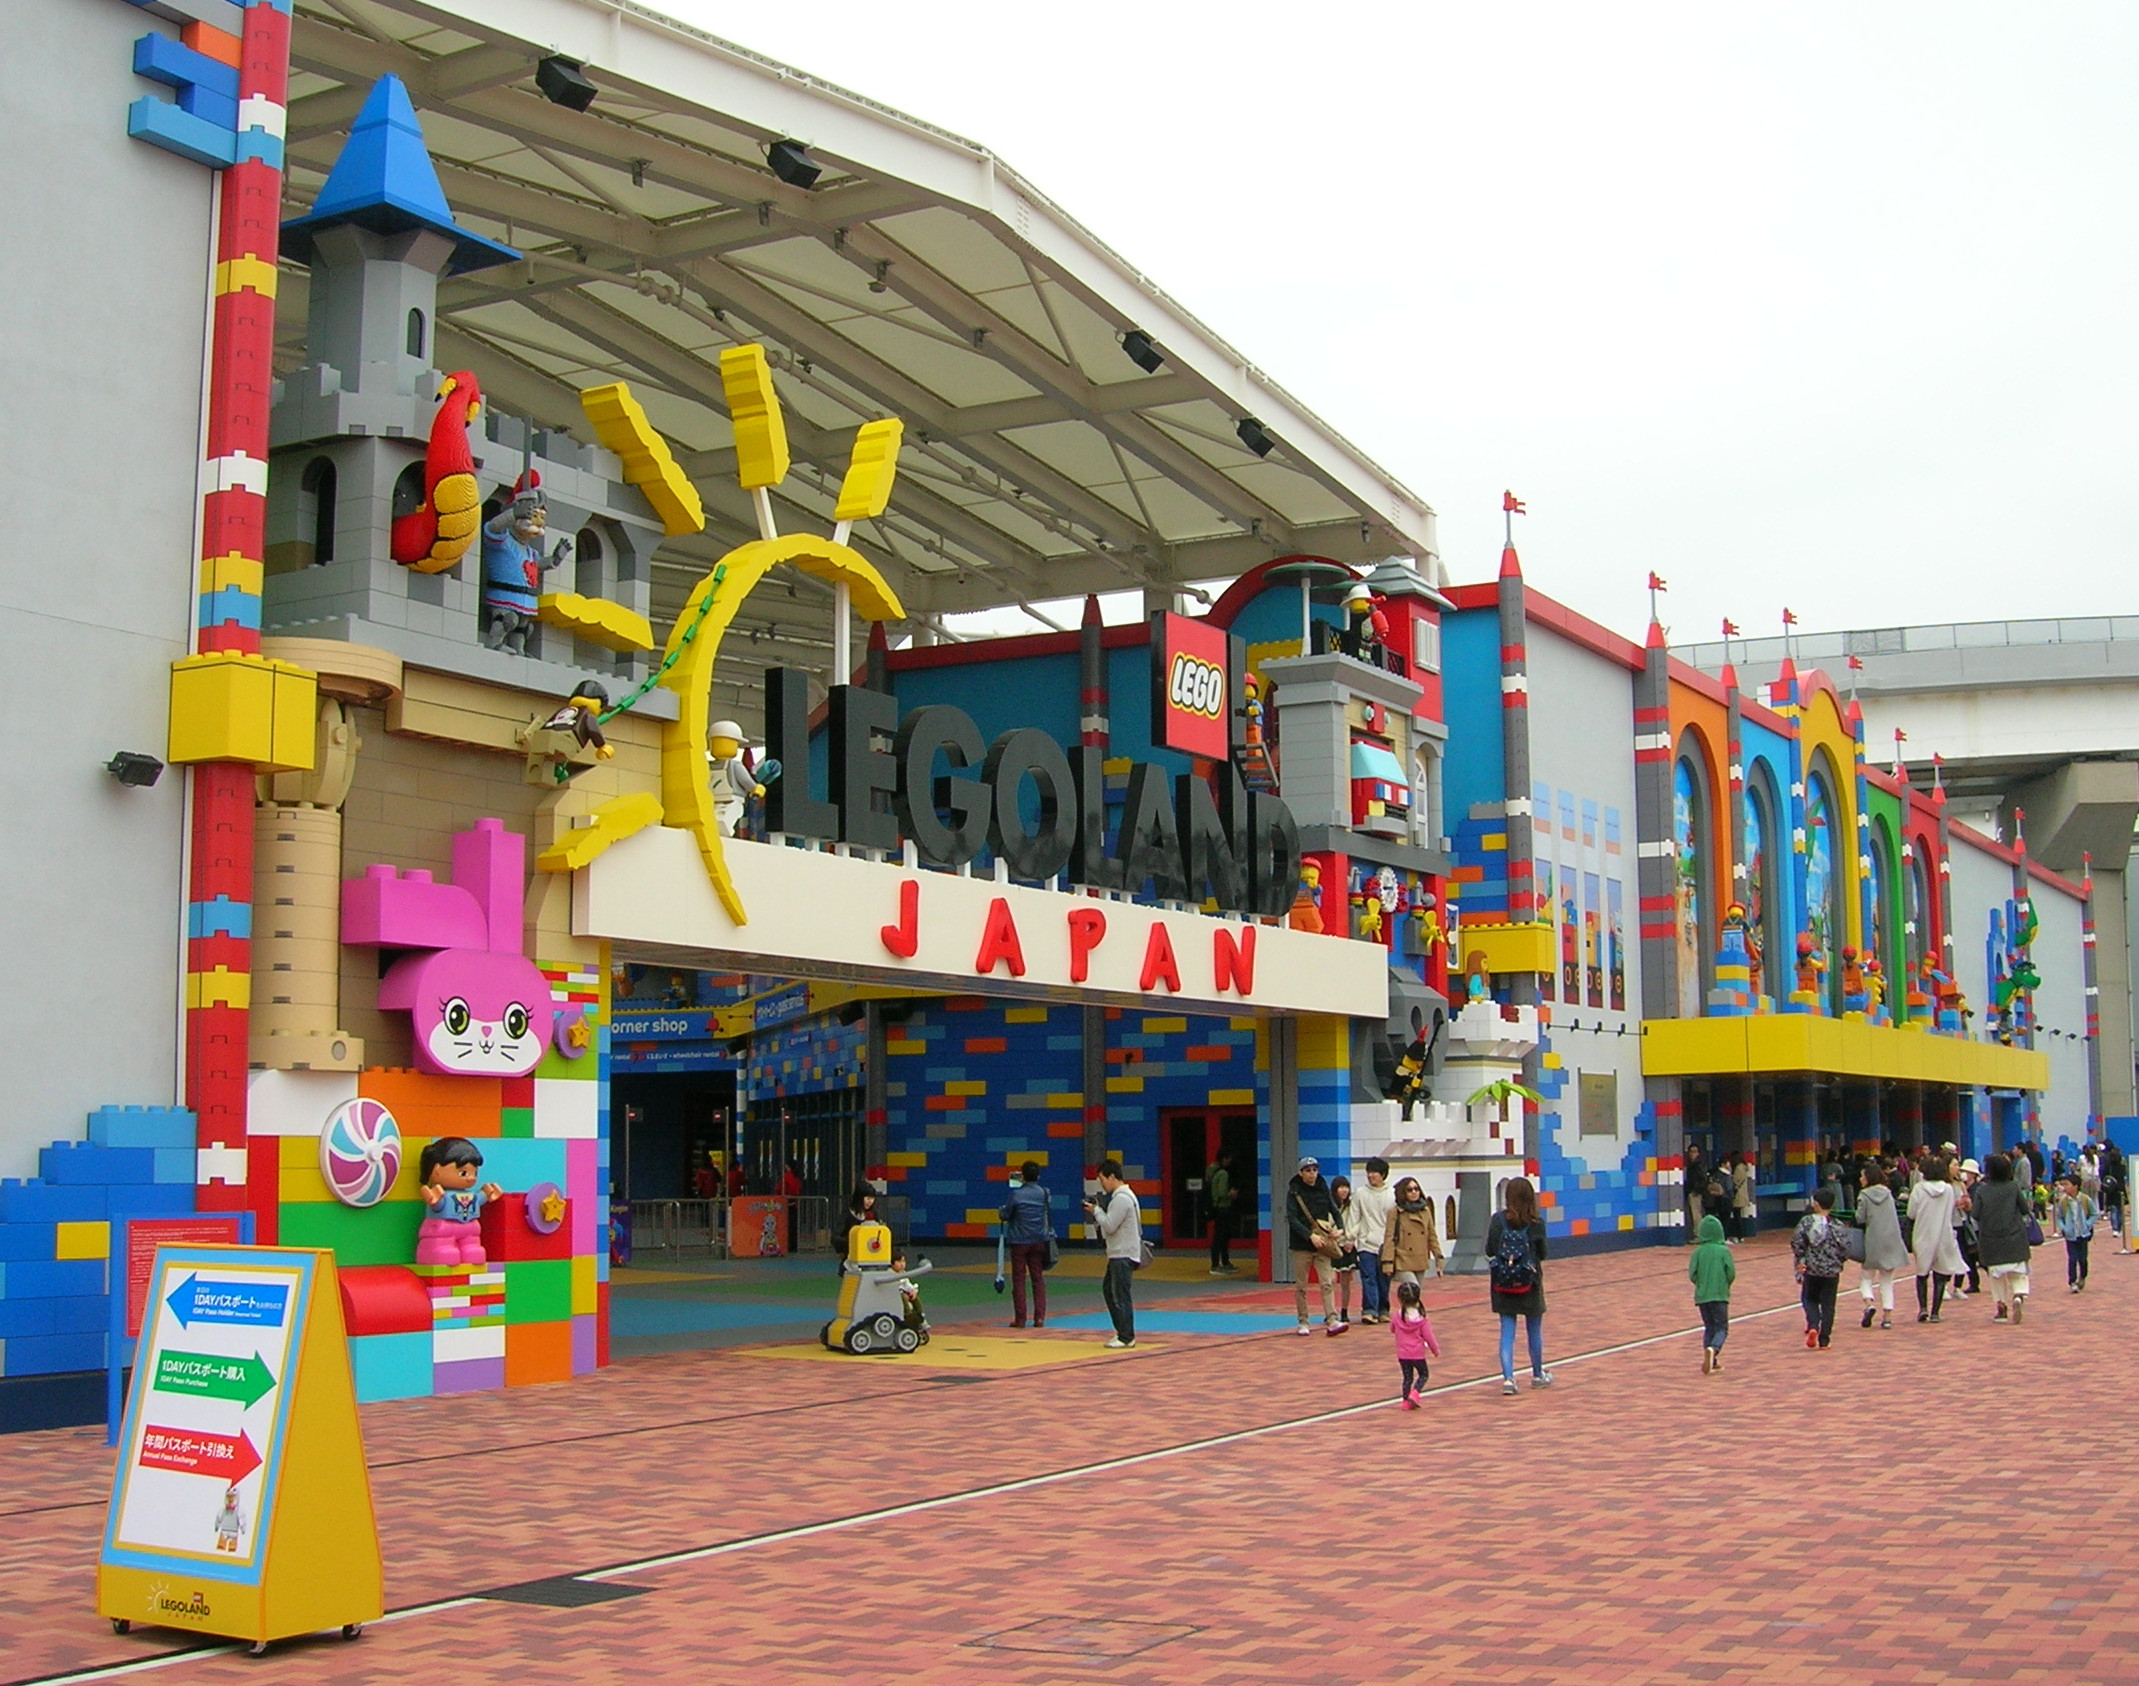 Legoland Japan-Entrance gate-20170410.jpg